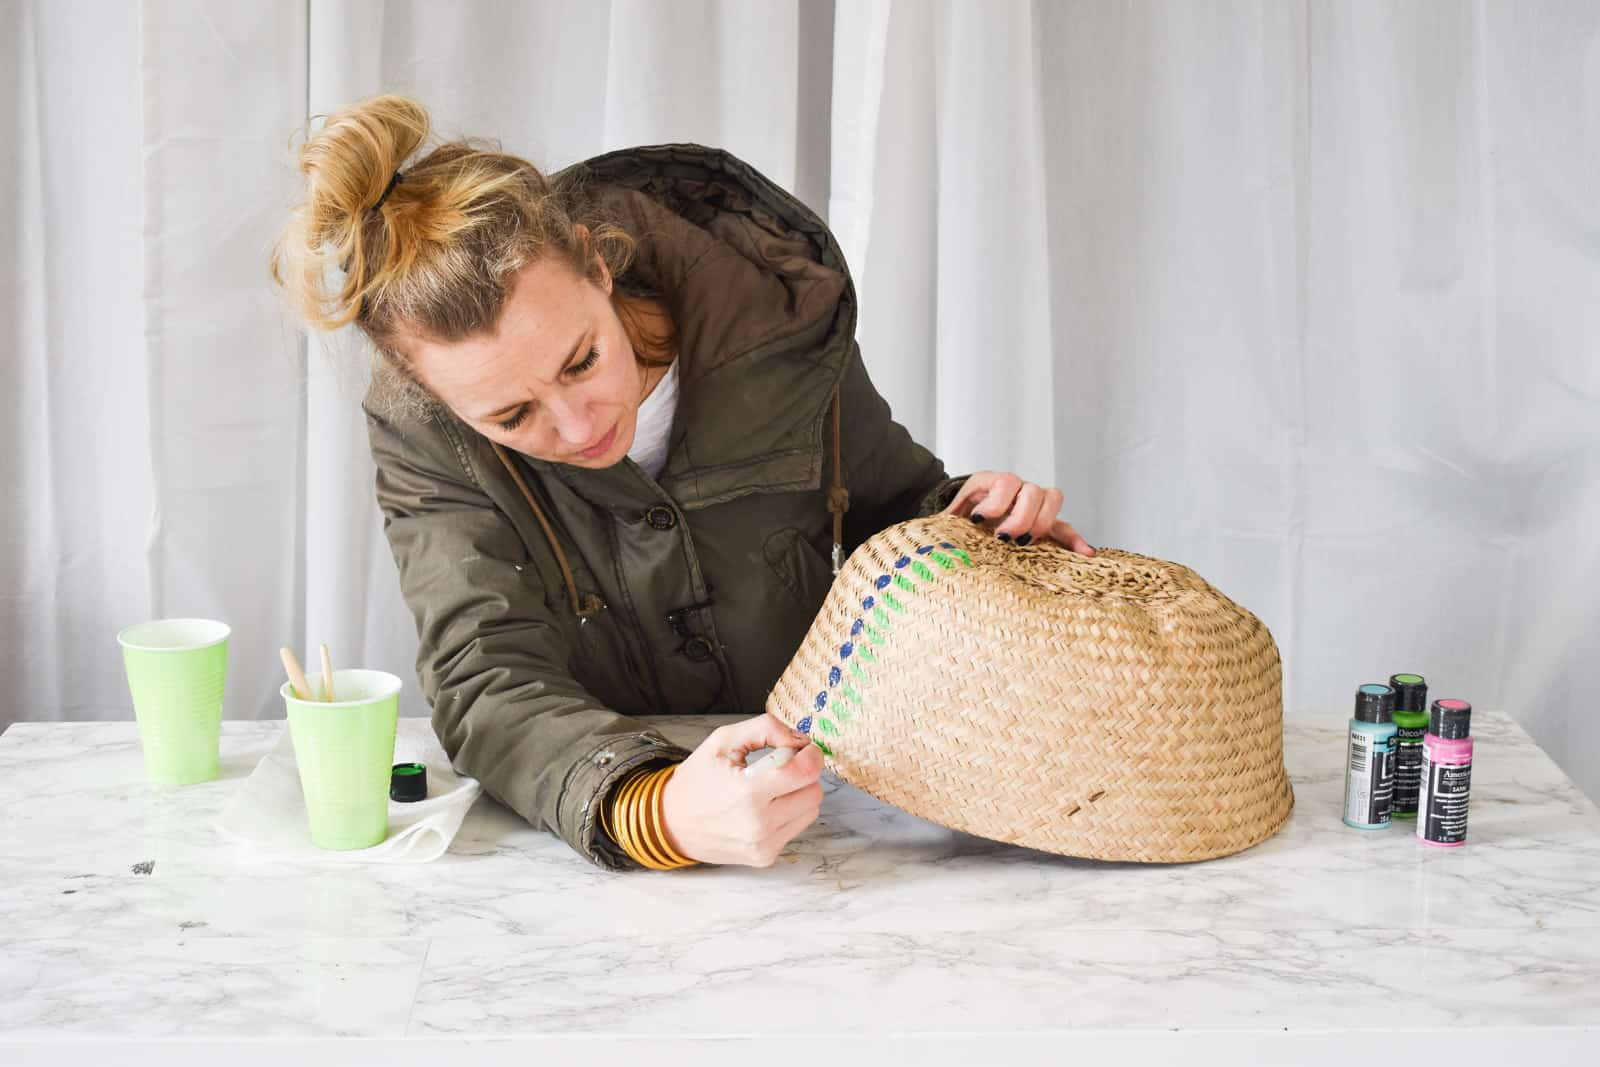 painting pattern onto the basket